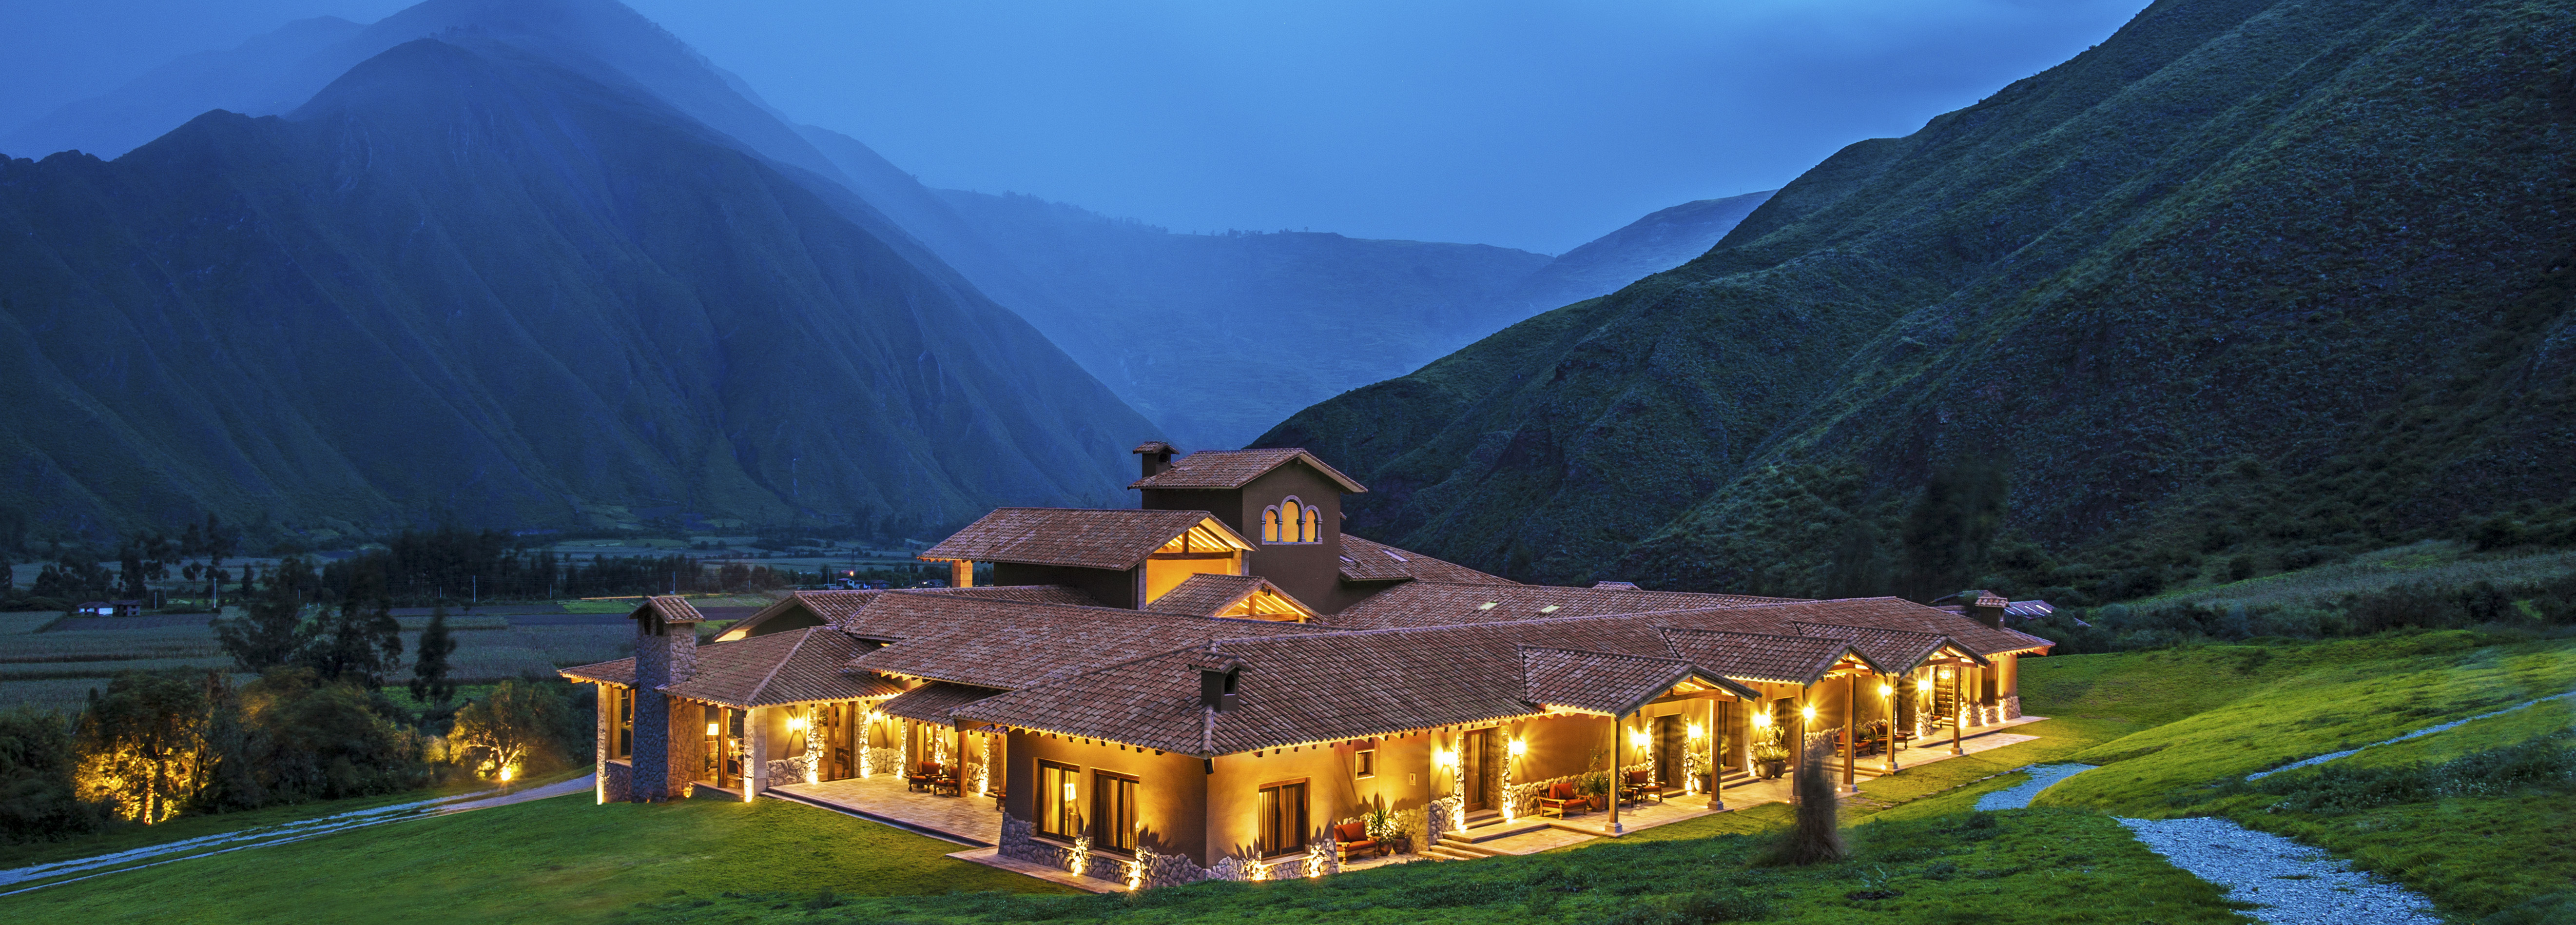 inkaterra-hacienda-urubamba-night